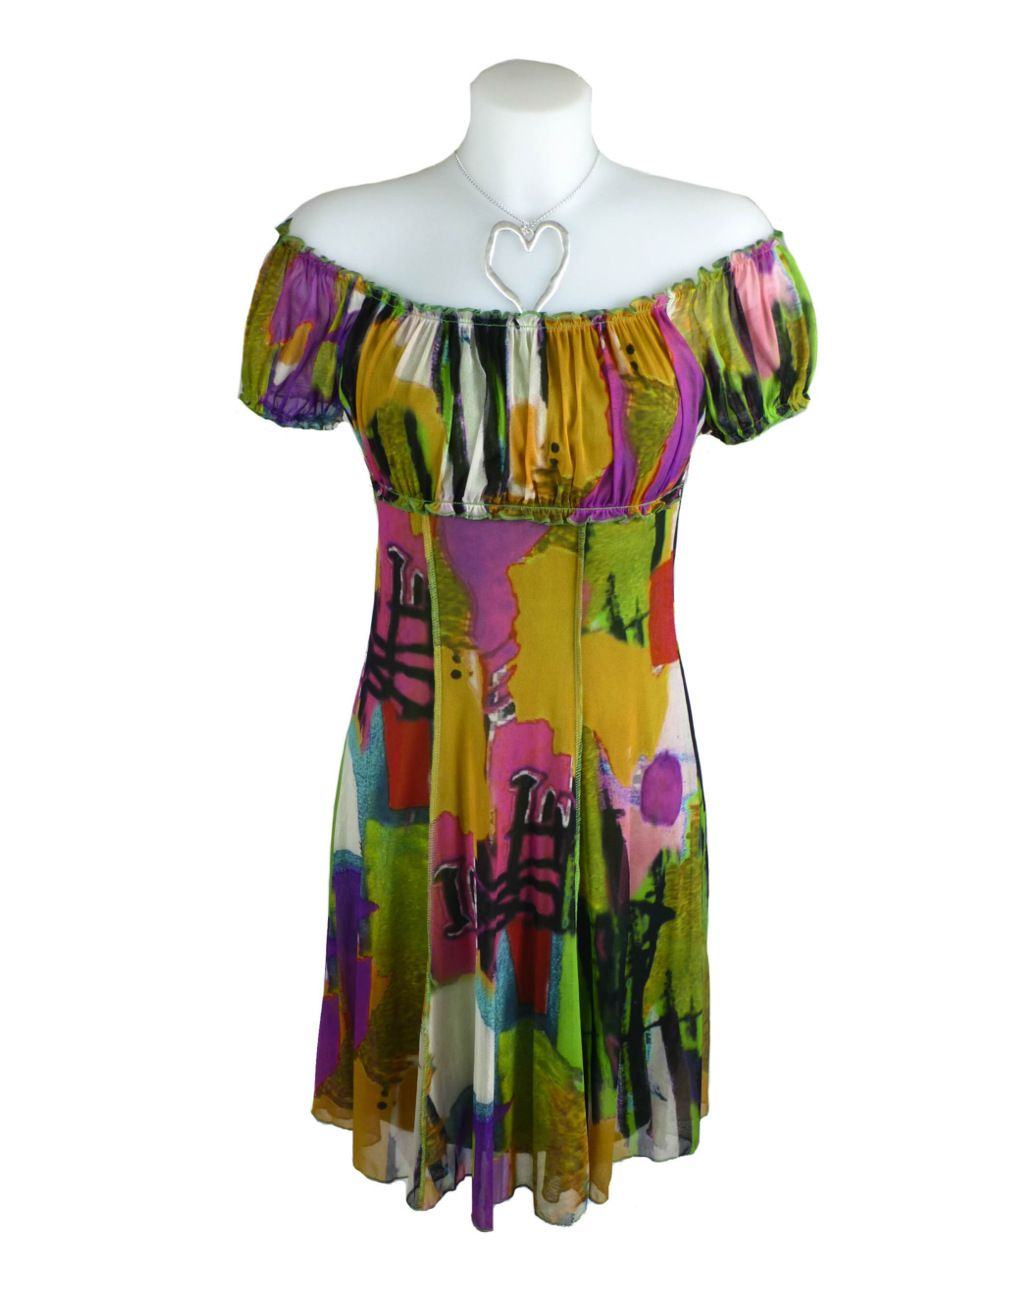 LULU-H Green Gypsy Style Dress 10-12